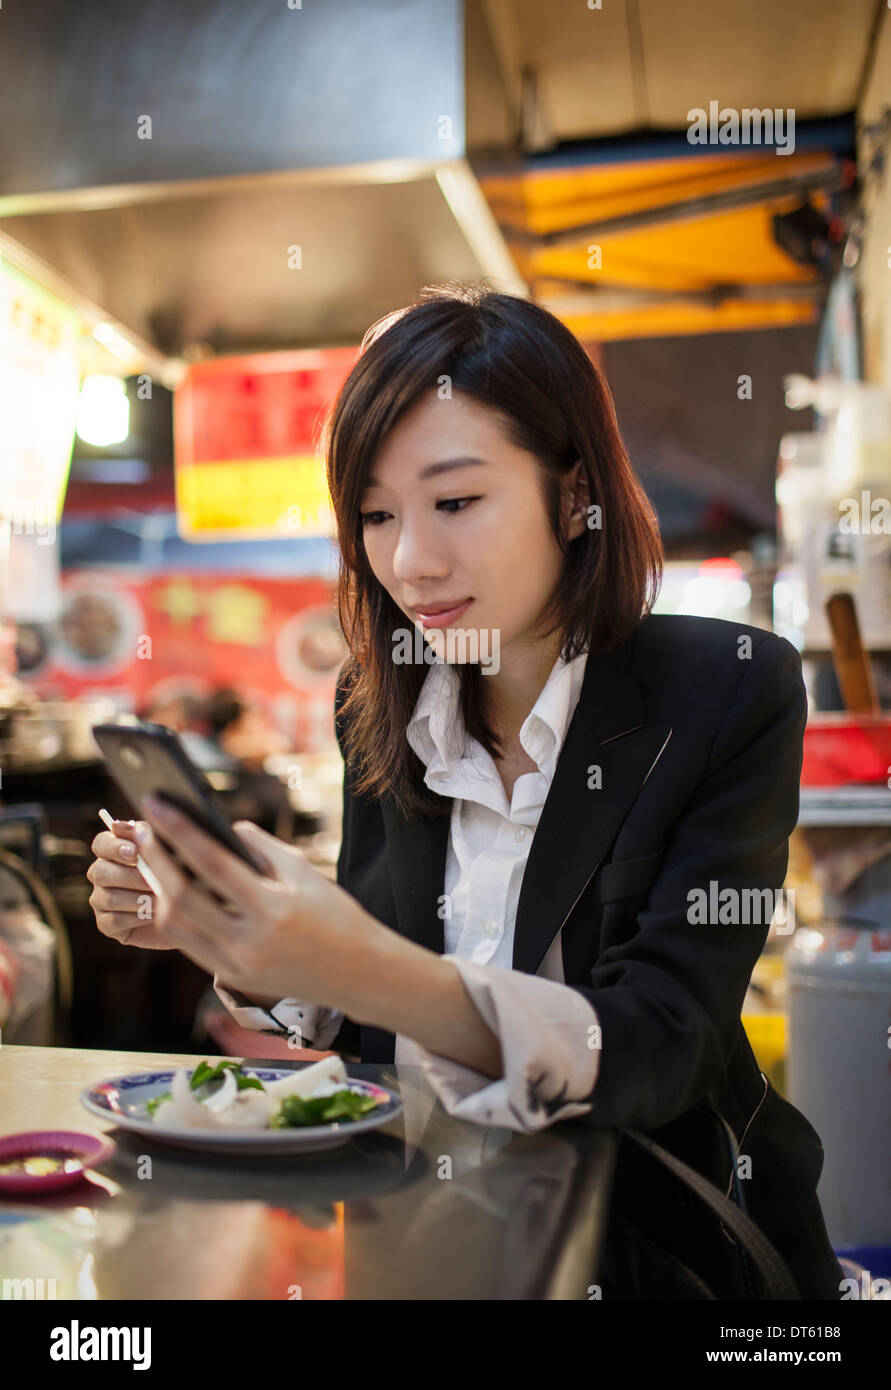 Businesswoman using cellular phone, night market, Taipei, Taiwan - Stock Image